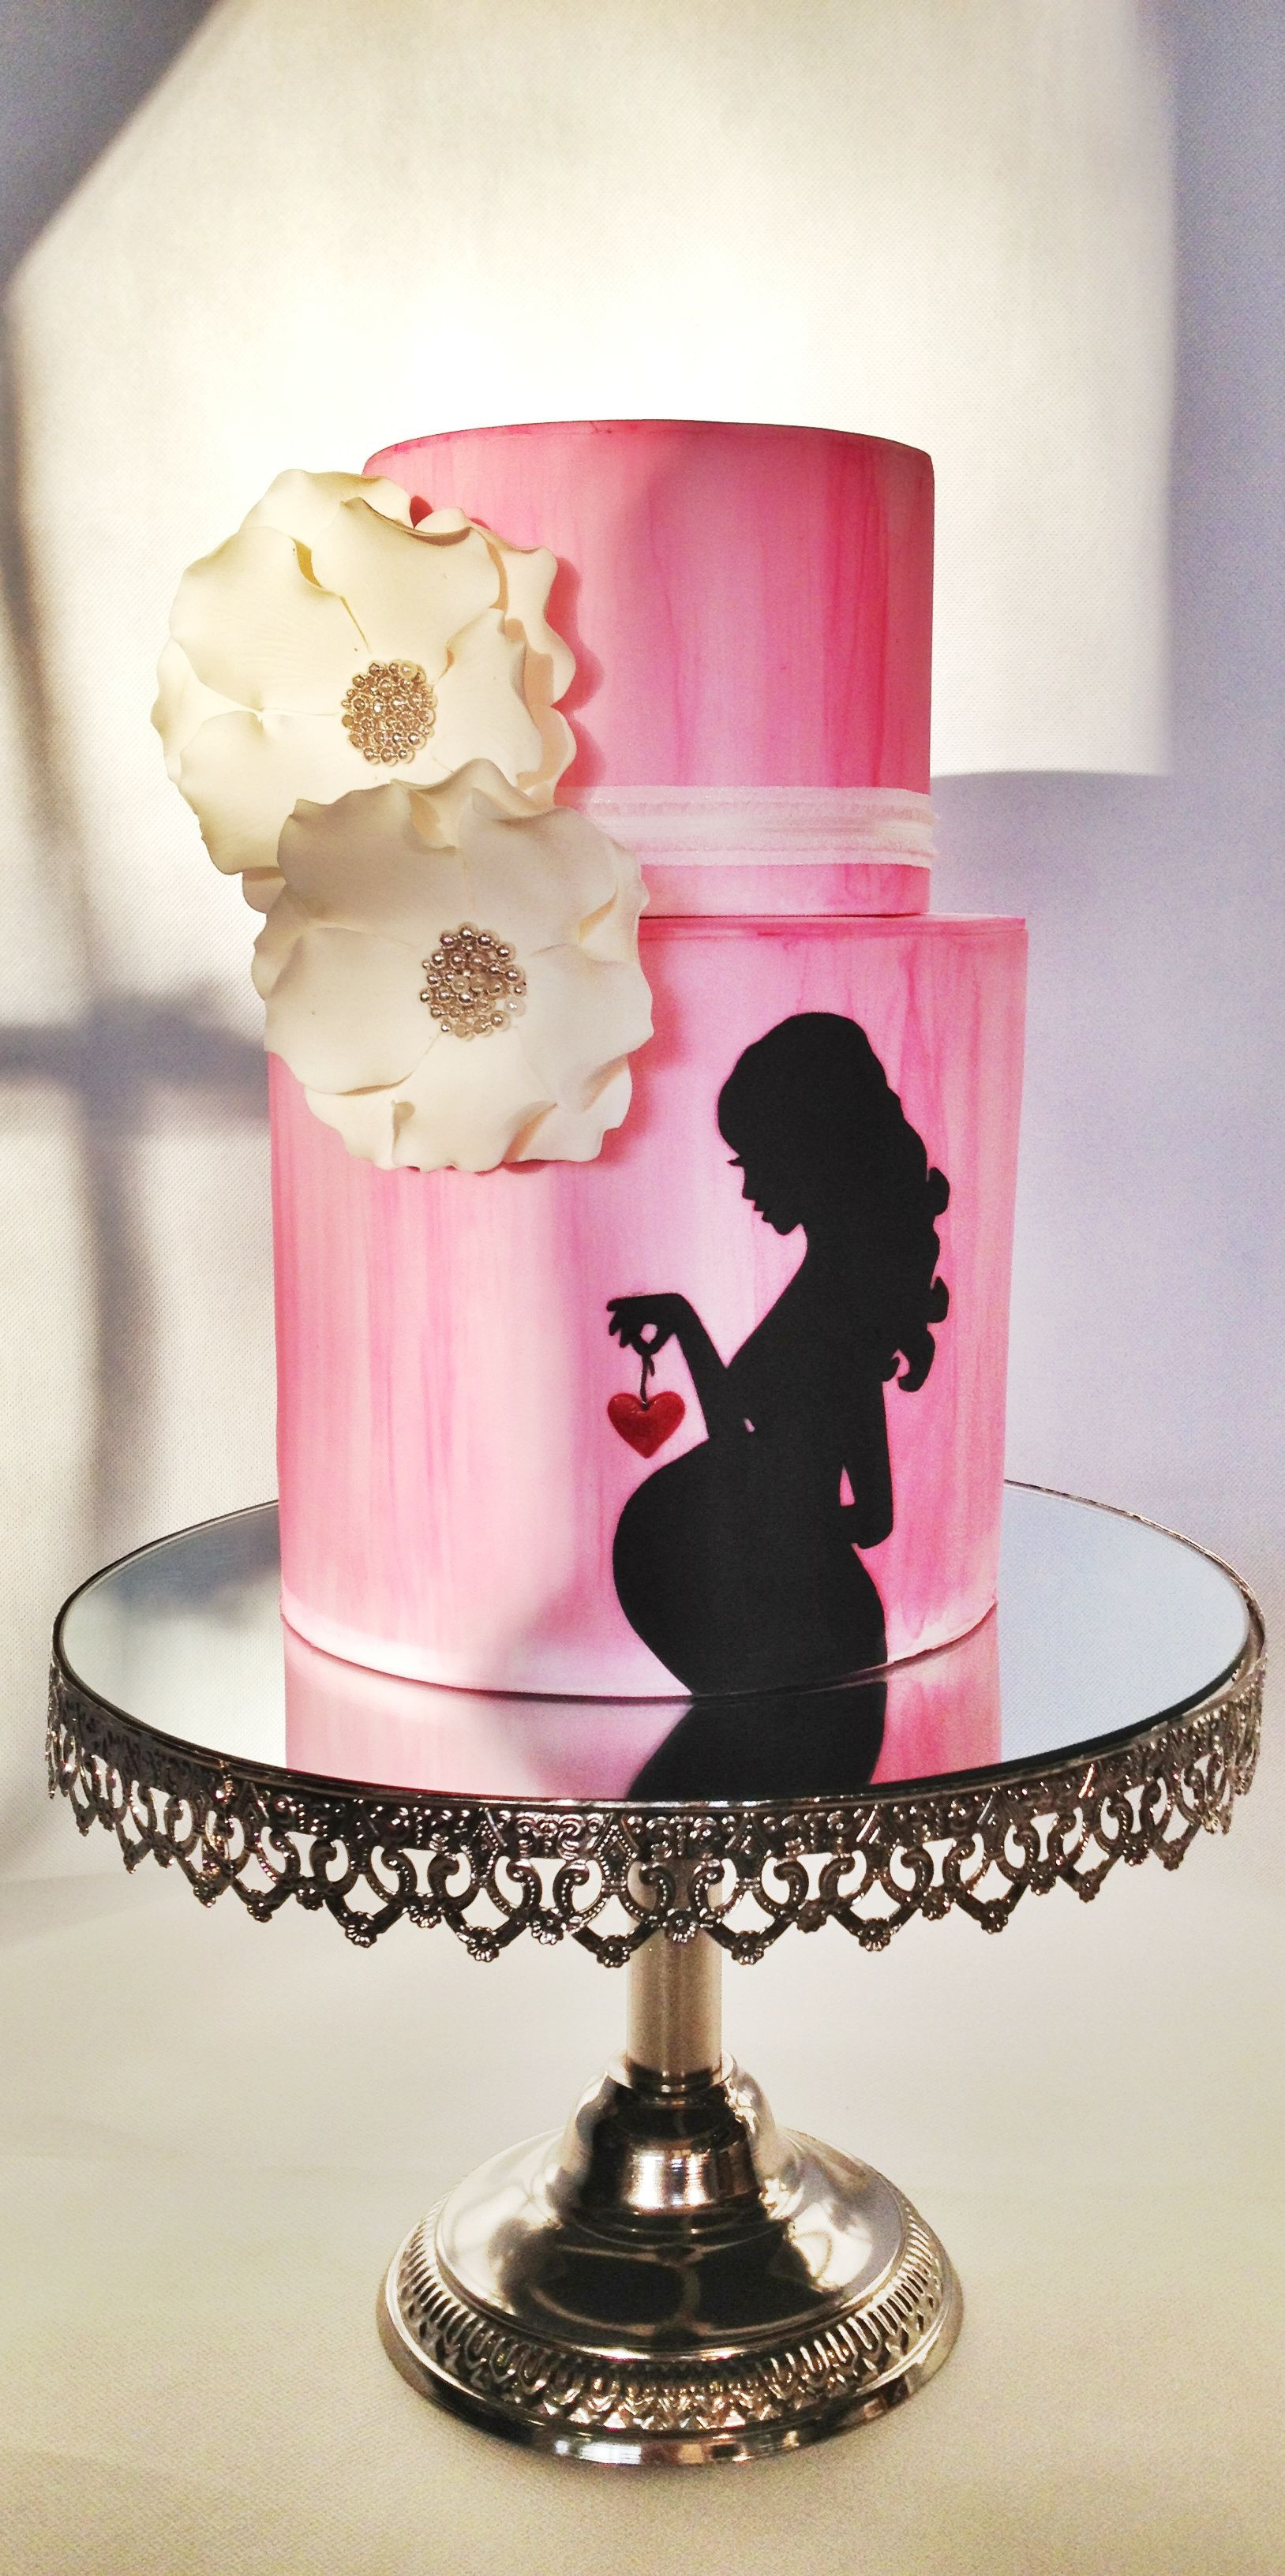 Pink baby shower cake with silhouette